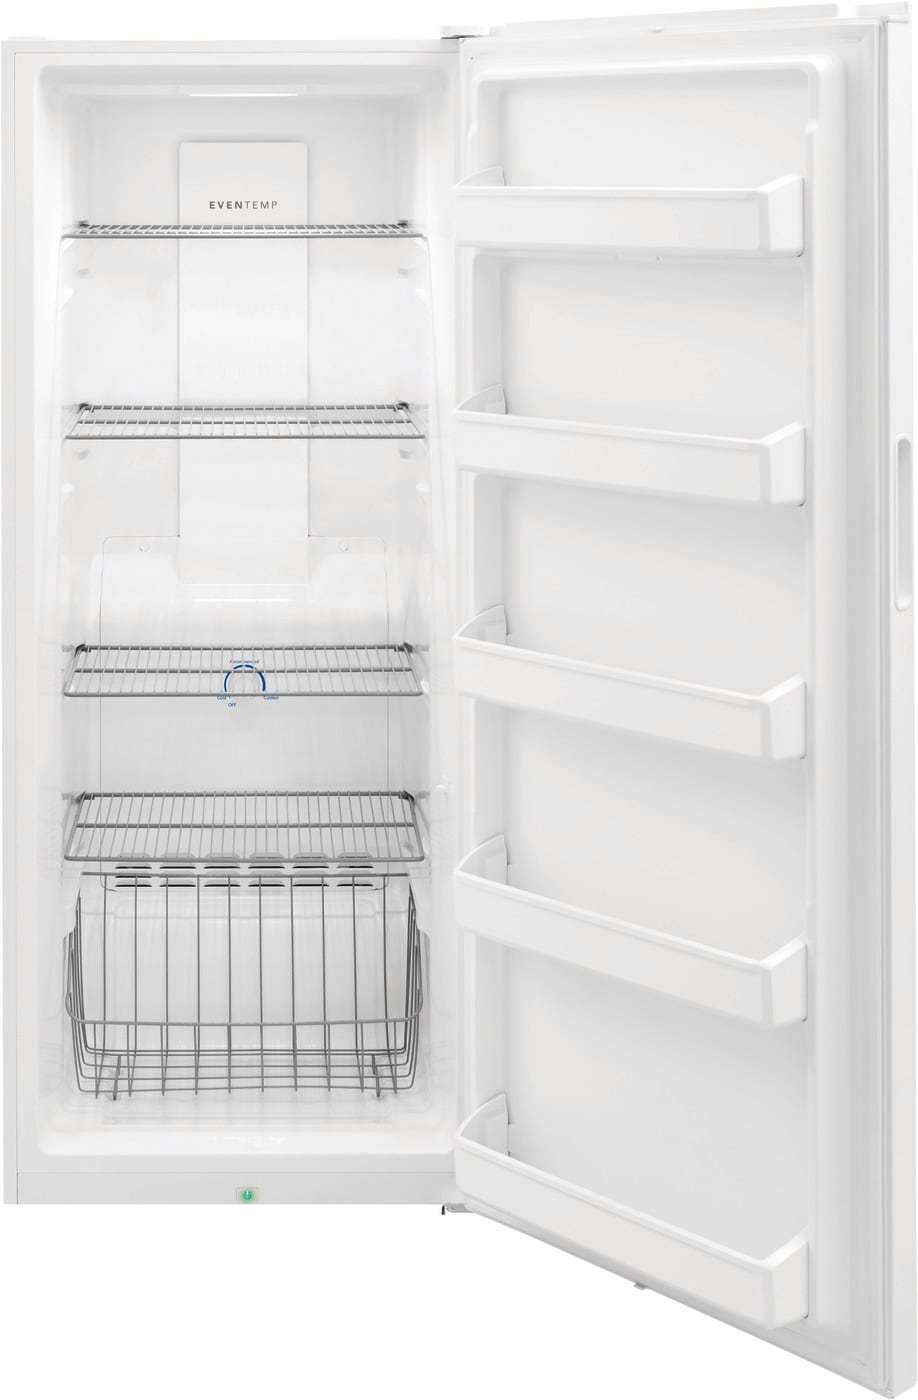 16 Cu. Ft Upright Freezer White FFFU16F2VW